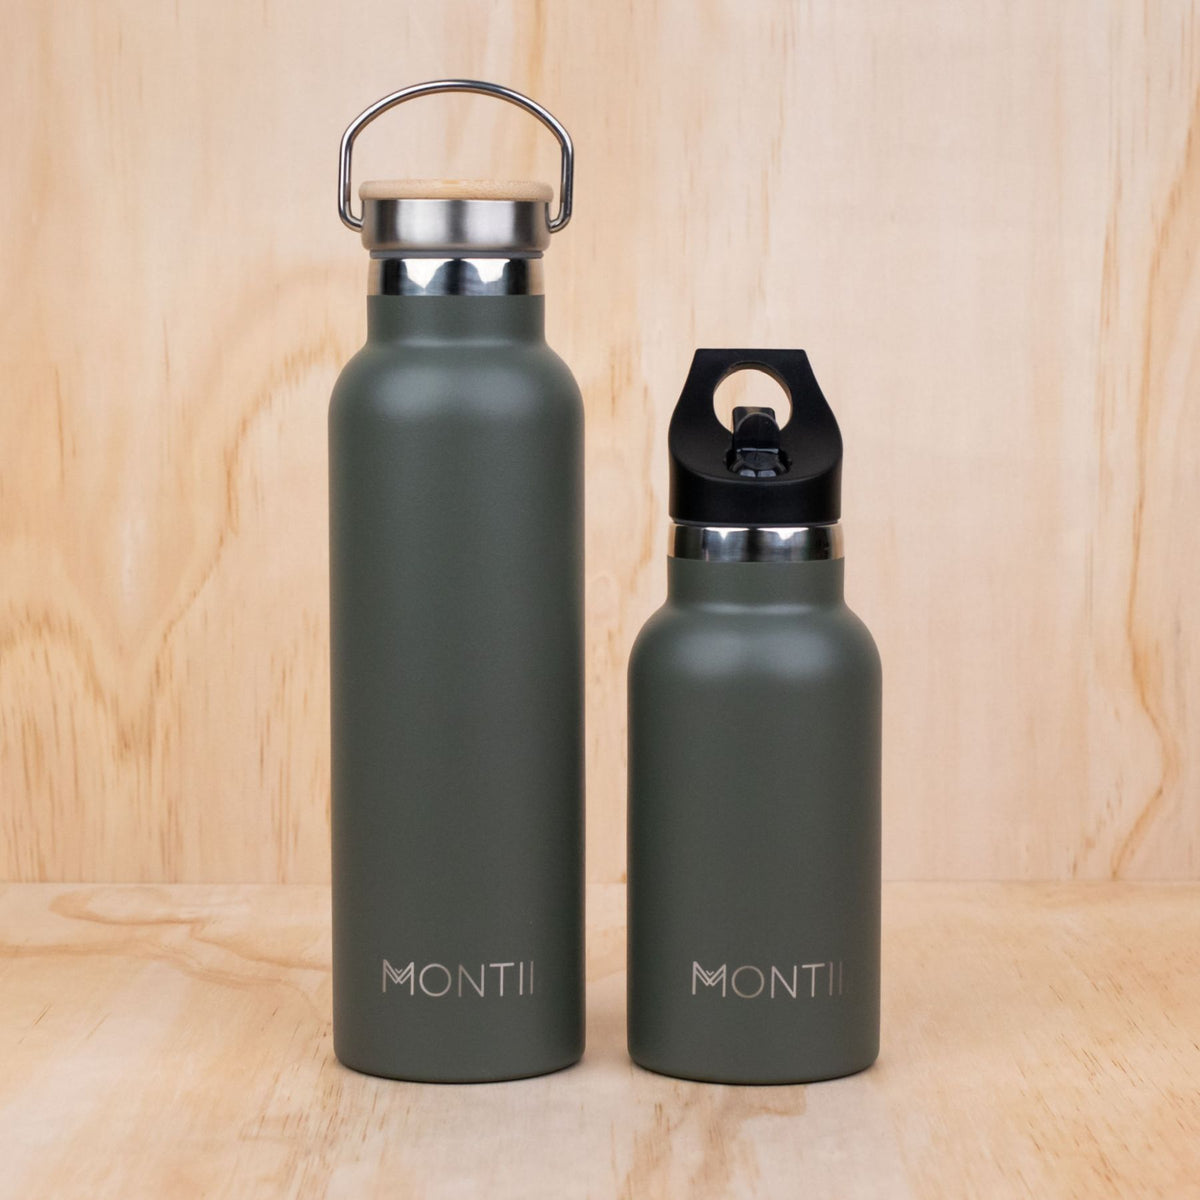 MontiiCo Original Drink Bottle - Moss - NEW - PRE-ORDERS OPEN!